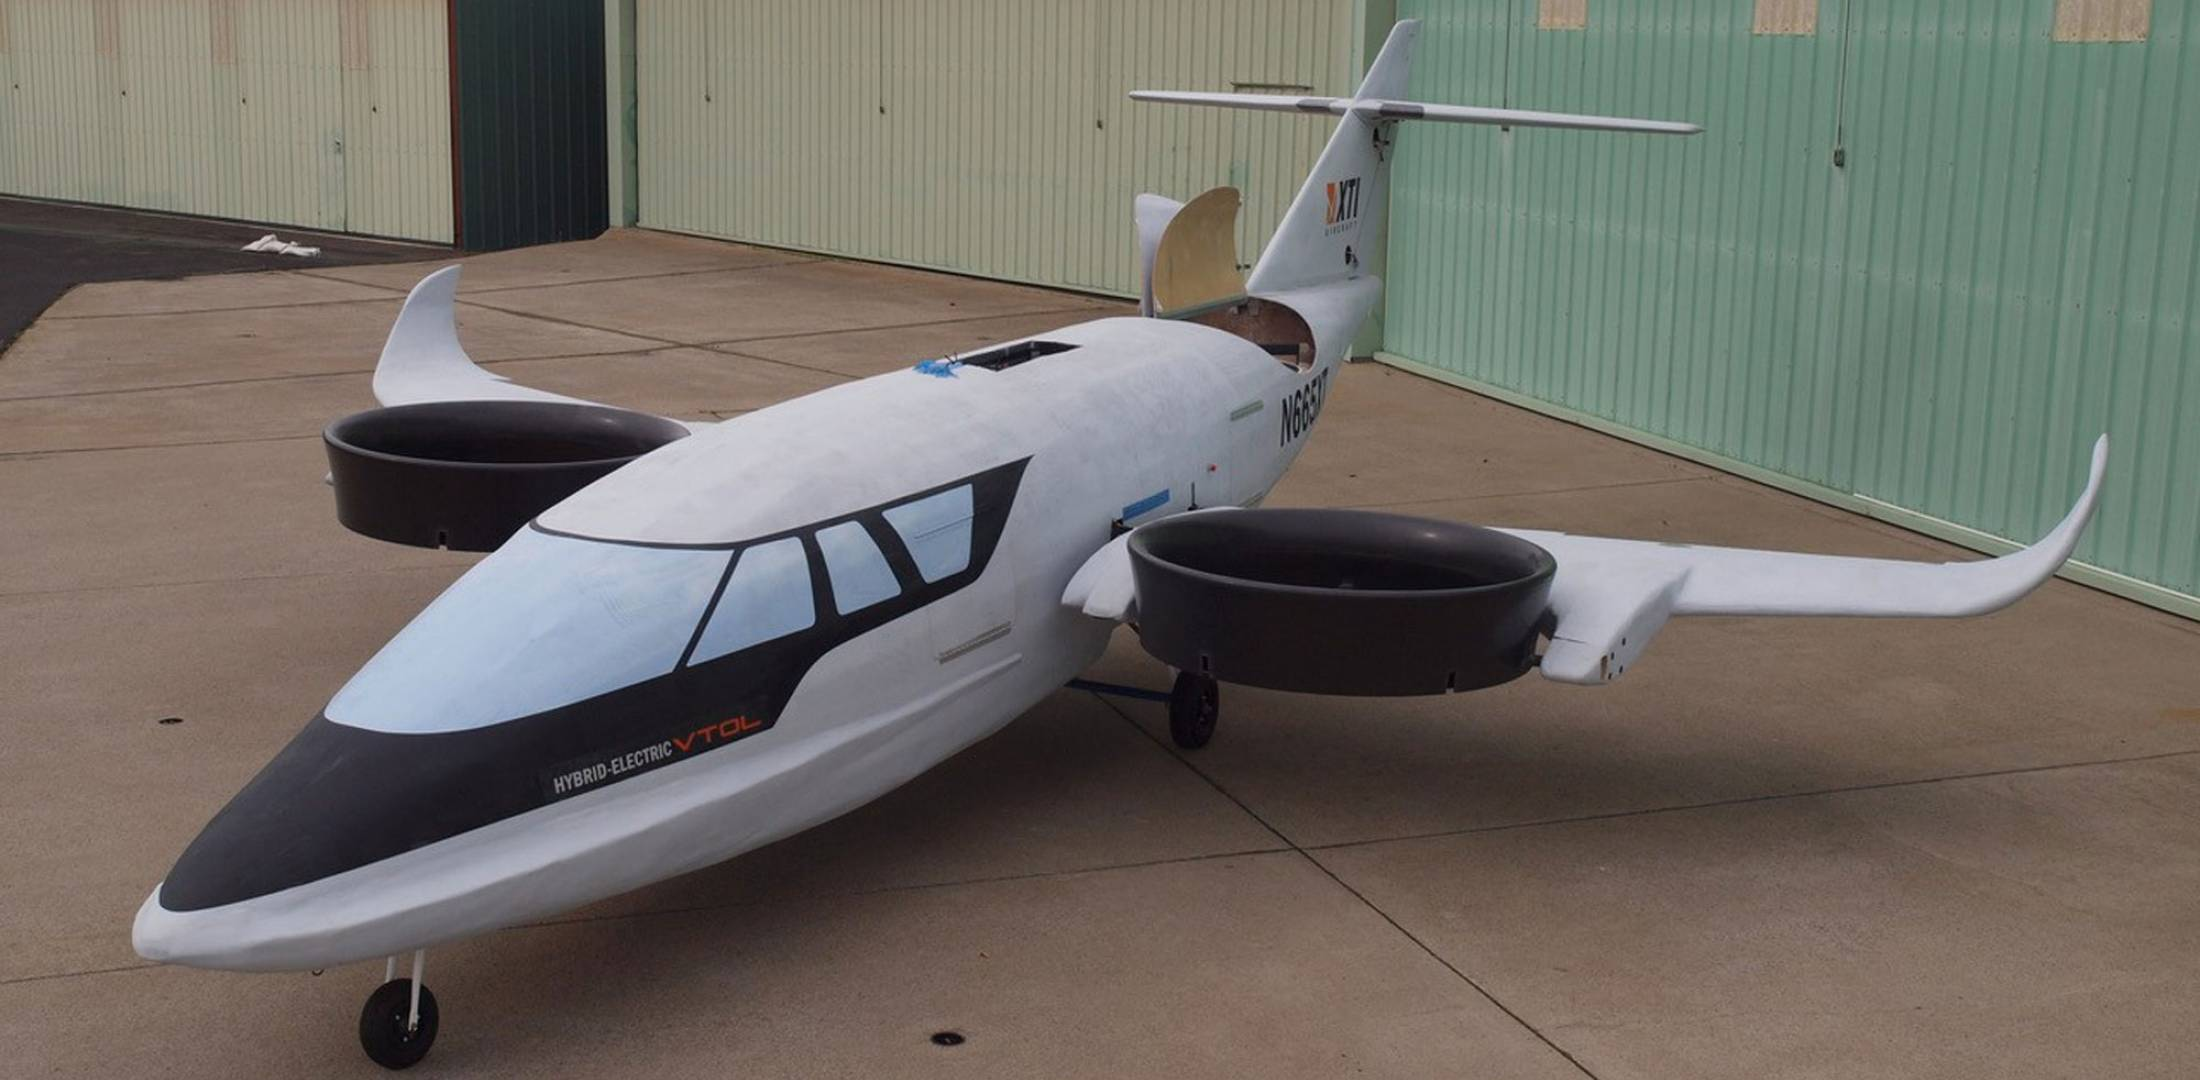 XTI TriFan 600 Proof-of-concept